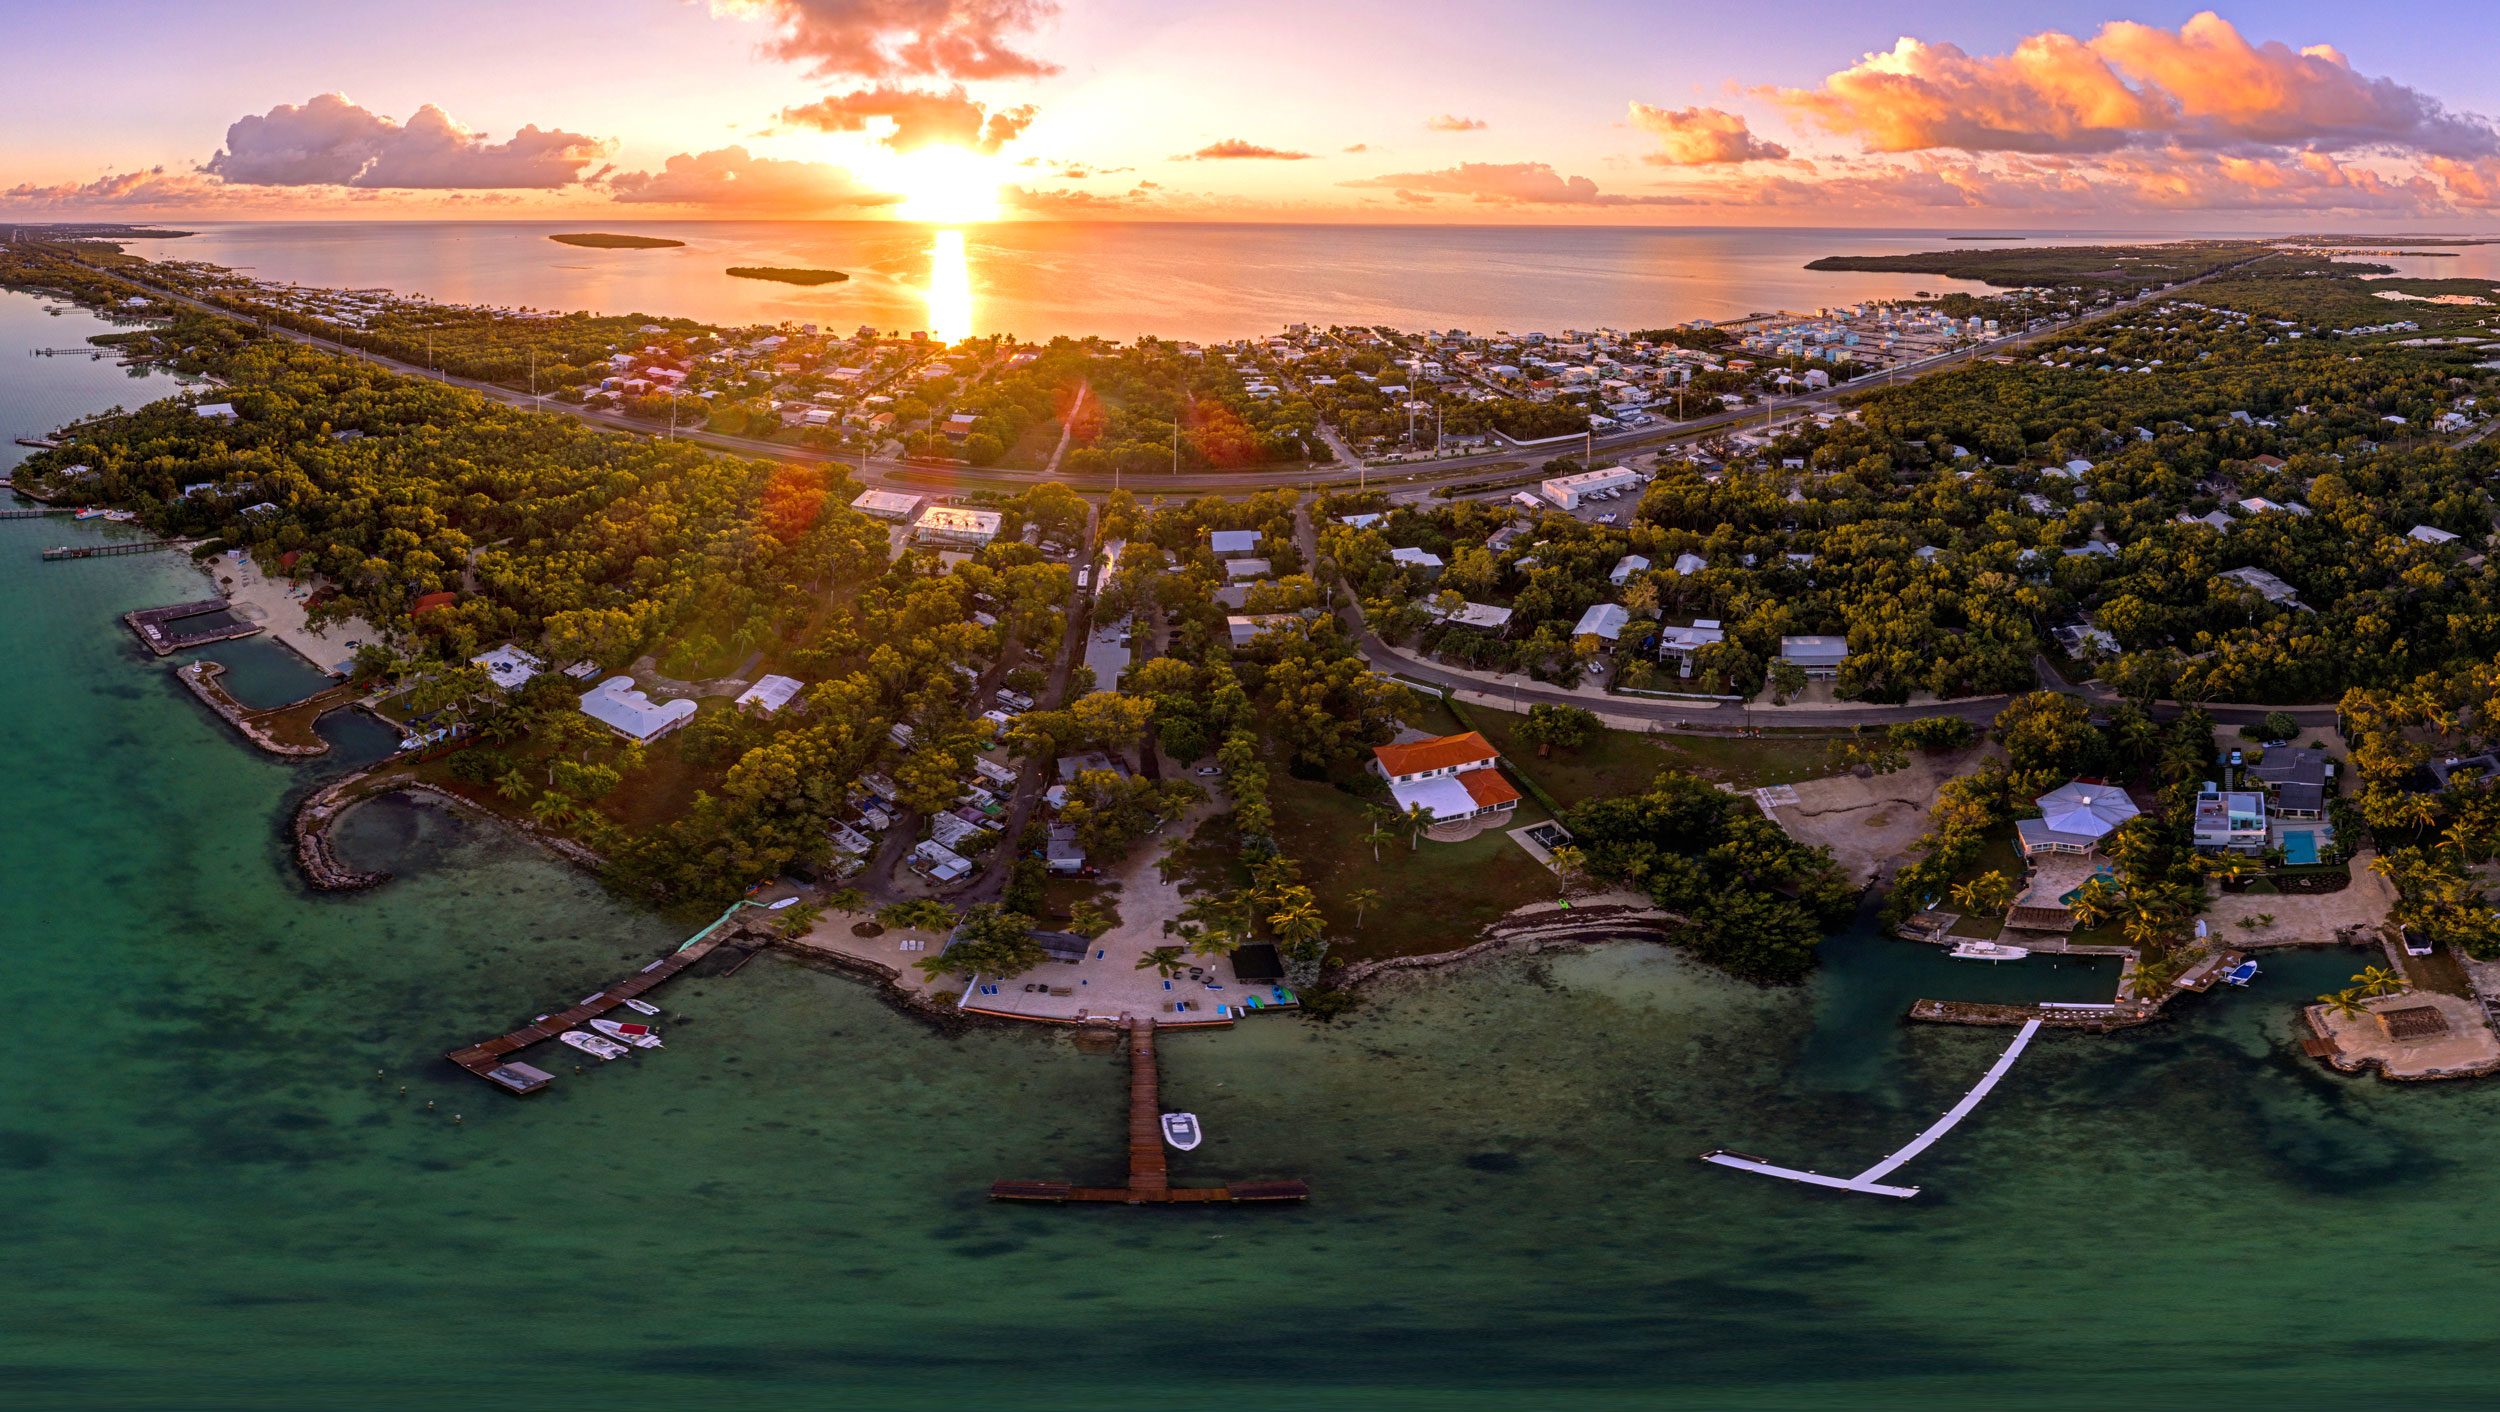 Panoramic view over Key Largo, Florida at sunrise. Photo 2019